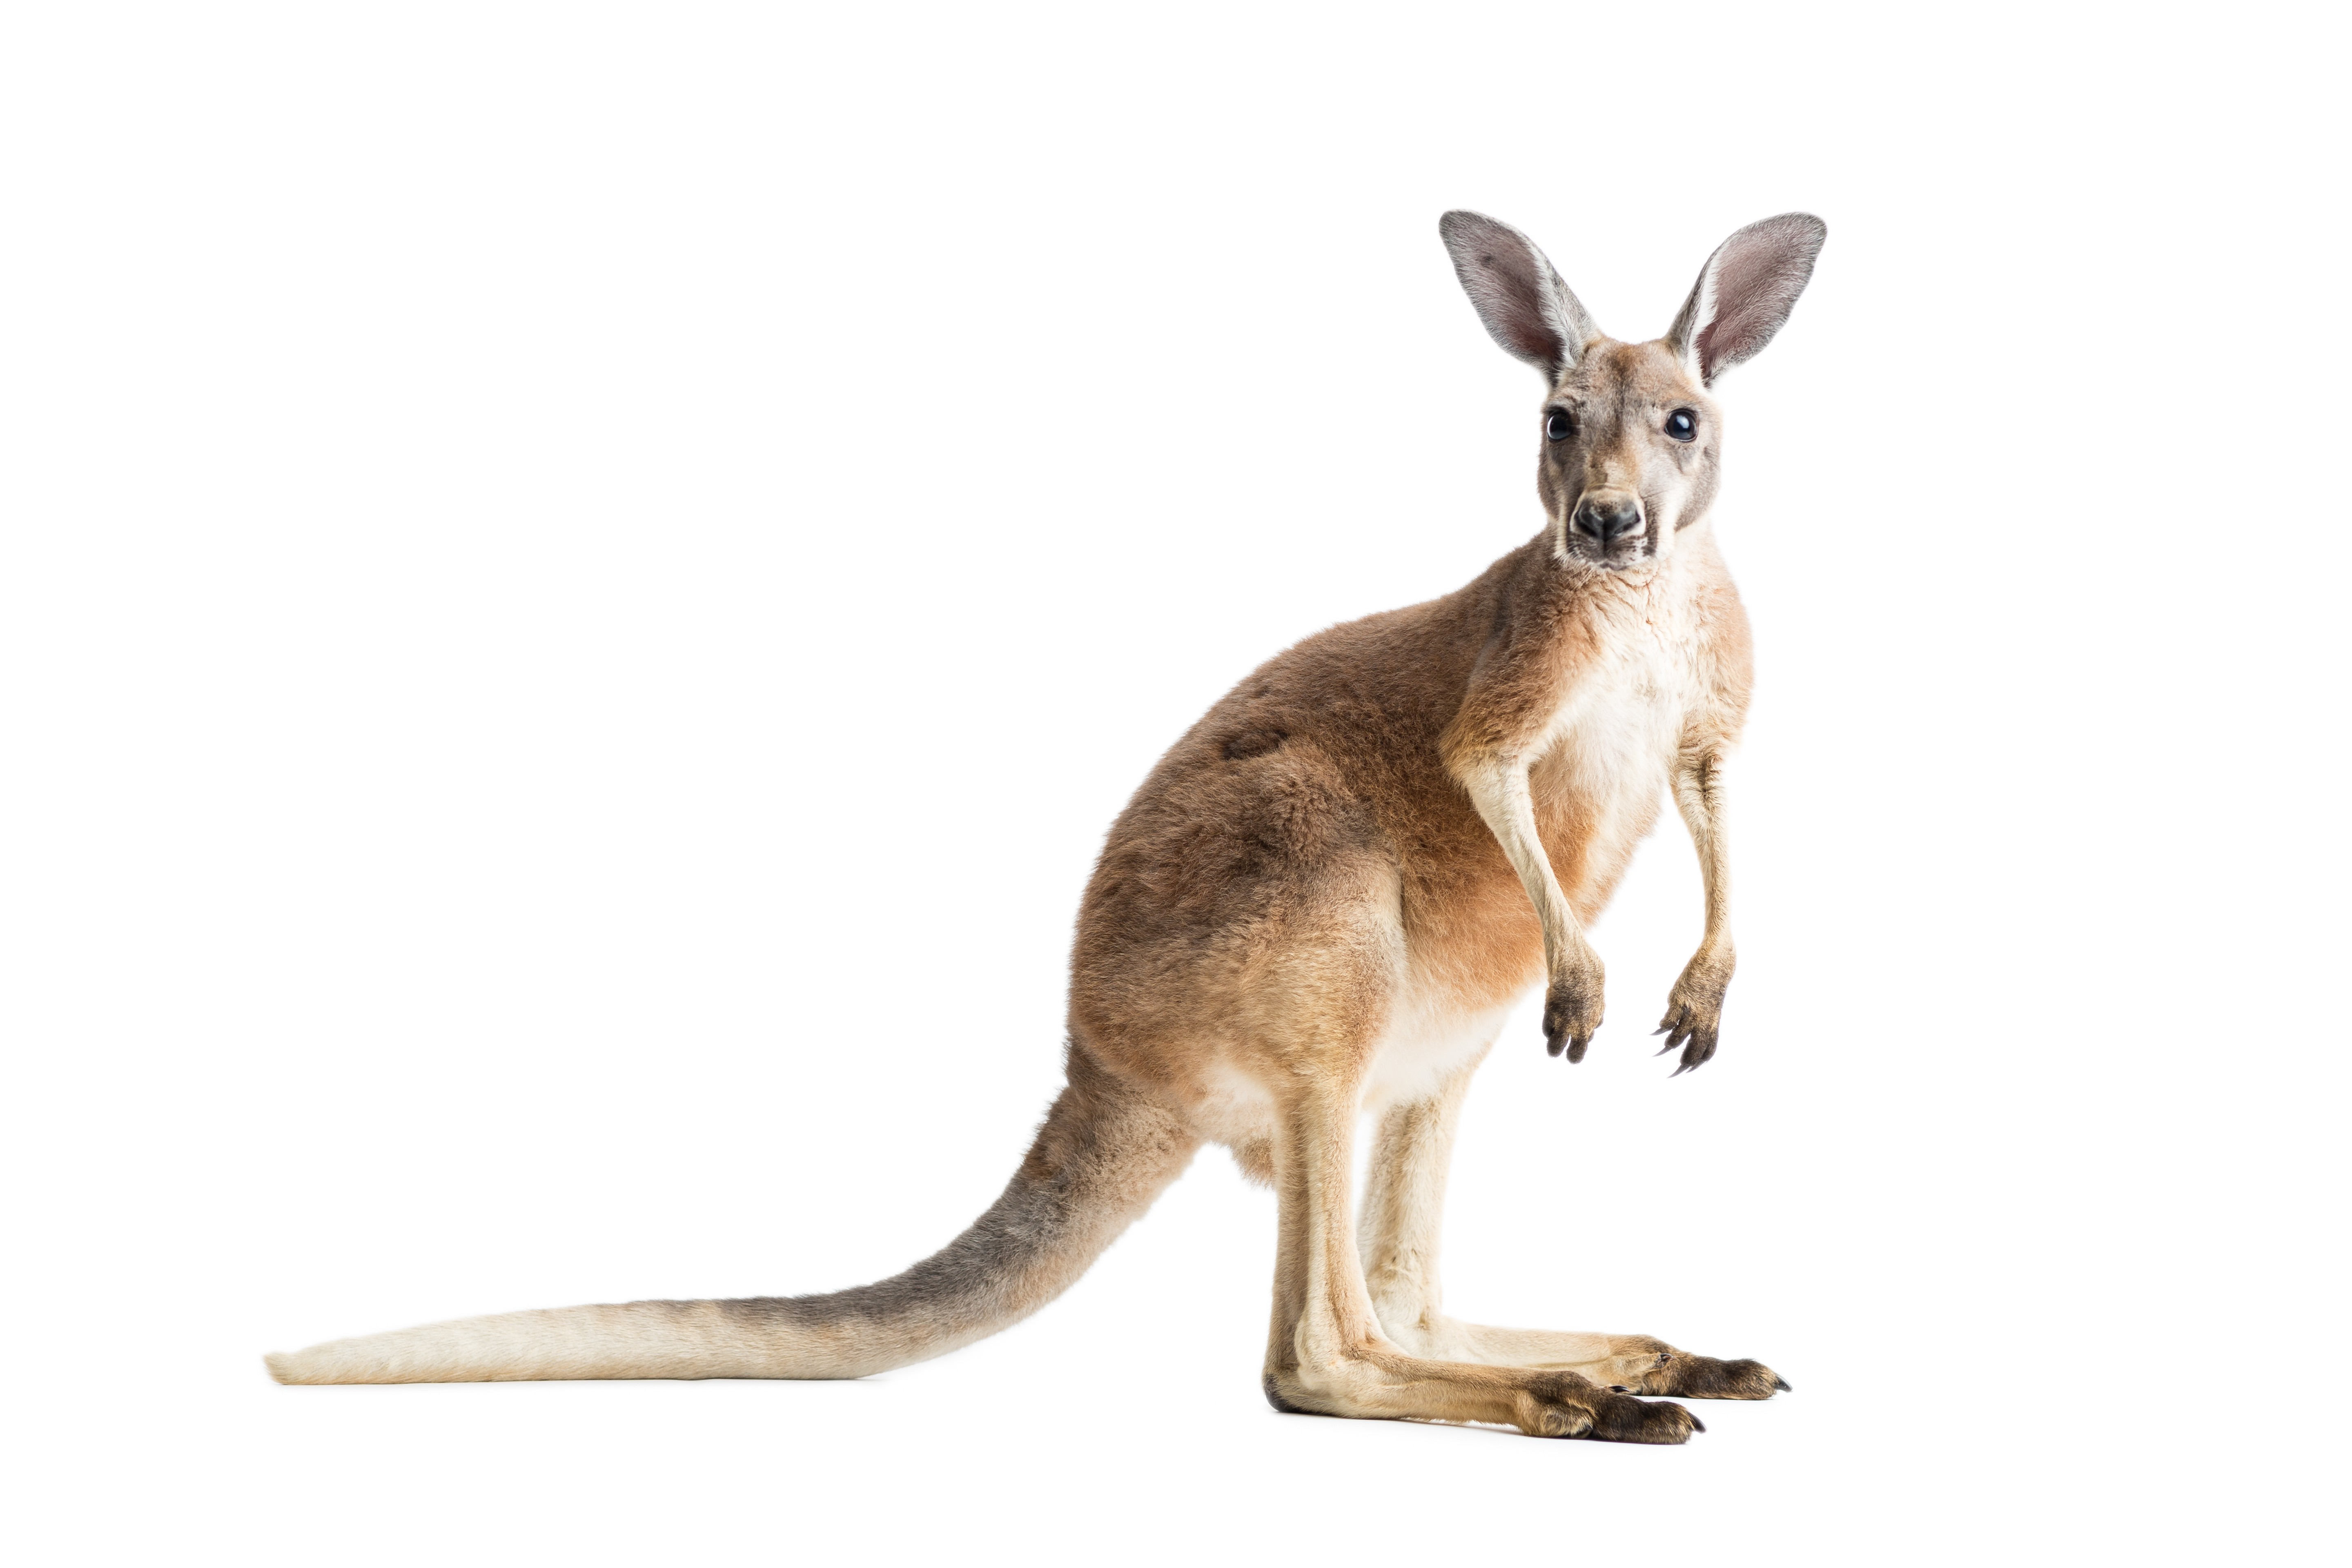 How Many Legs Does A Kangaroo Have